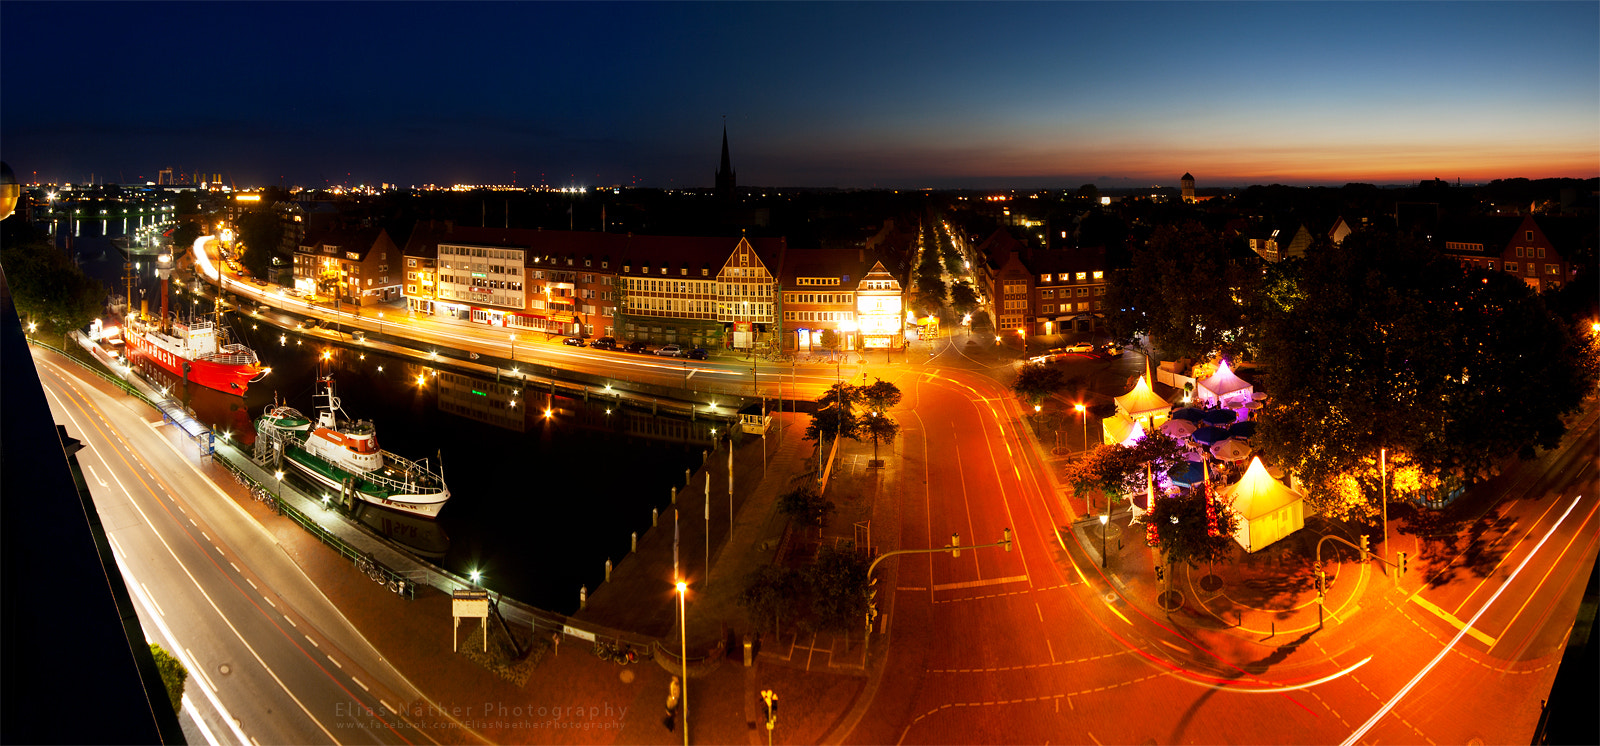 Photograph Emden at Night by Elias Näther on 500px